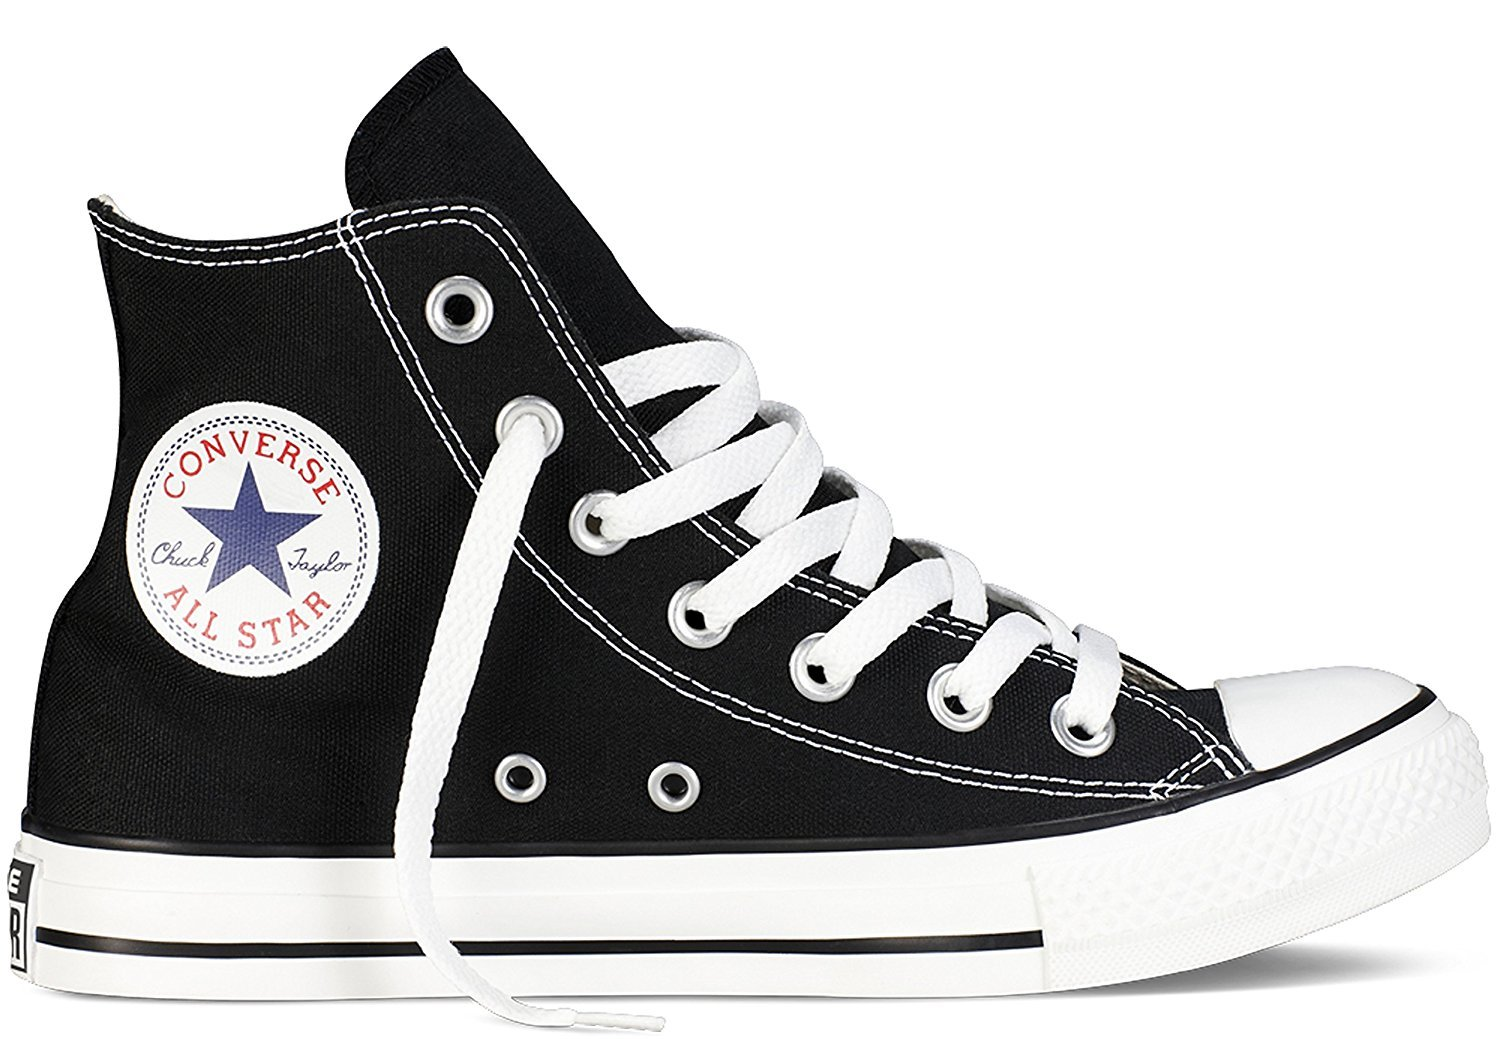 Converse Chuck Taylor 17875 Etoiles Low Top Sneakers Mode Sneaker B07BY2CSQQ Mode Noir (Noir/Blanc) 27bcebe - shopssong.space